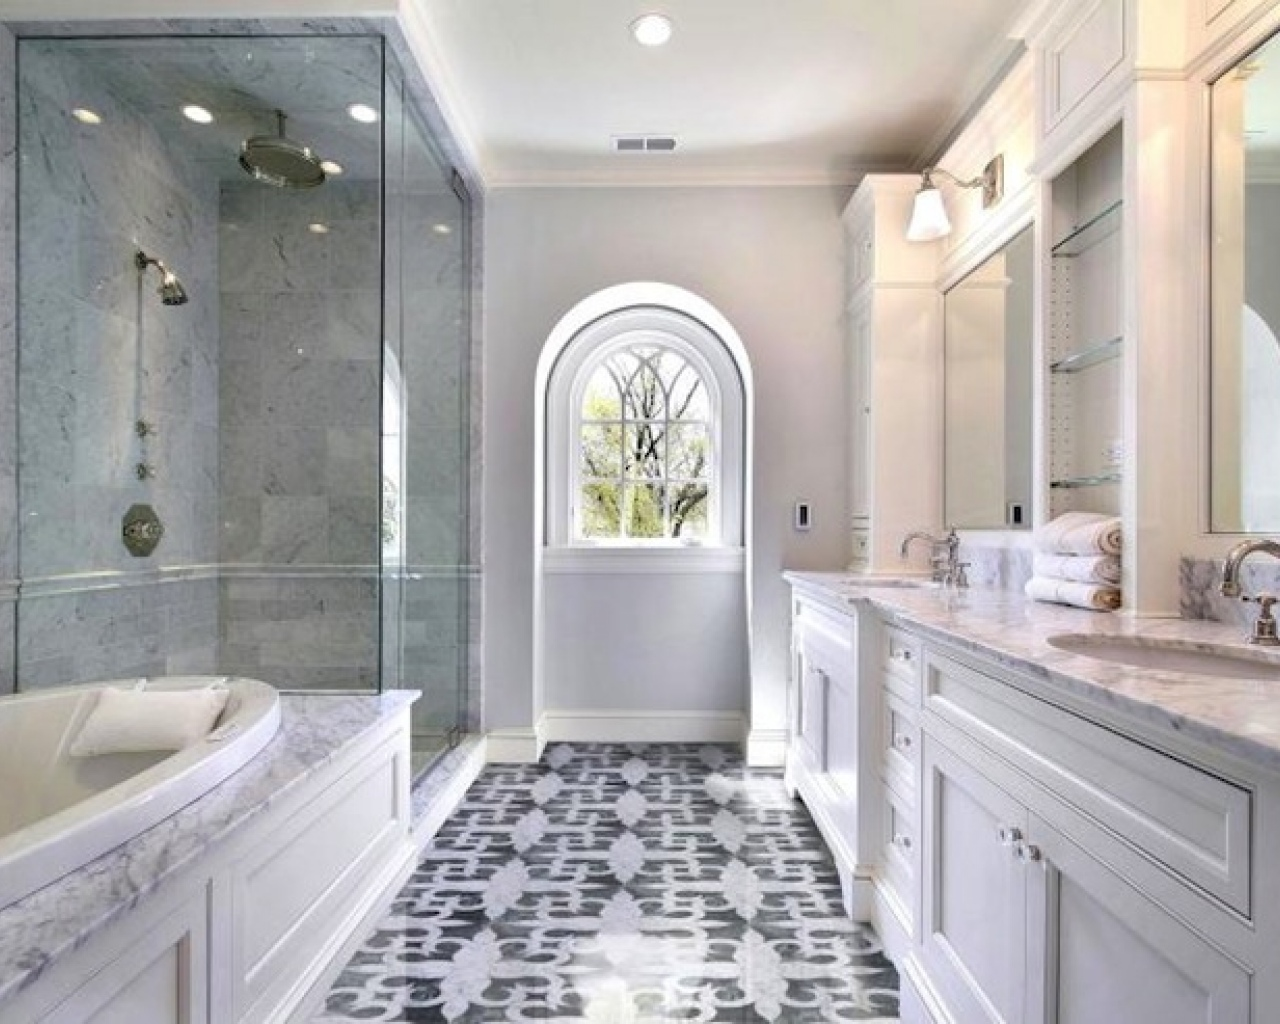 25 amazing italian bathroom tile designs ideas and pictures Bathroom wall and floor tiles ideas